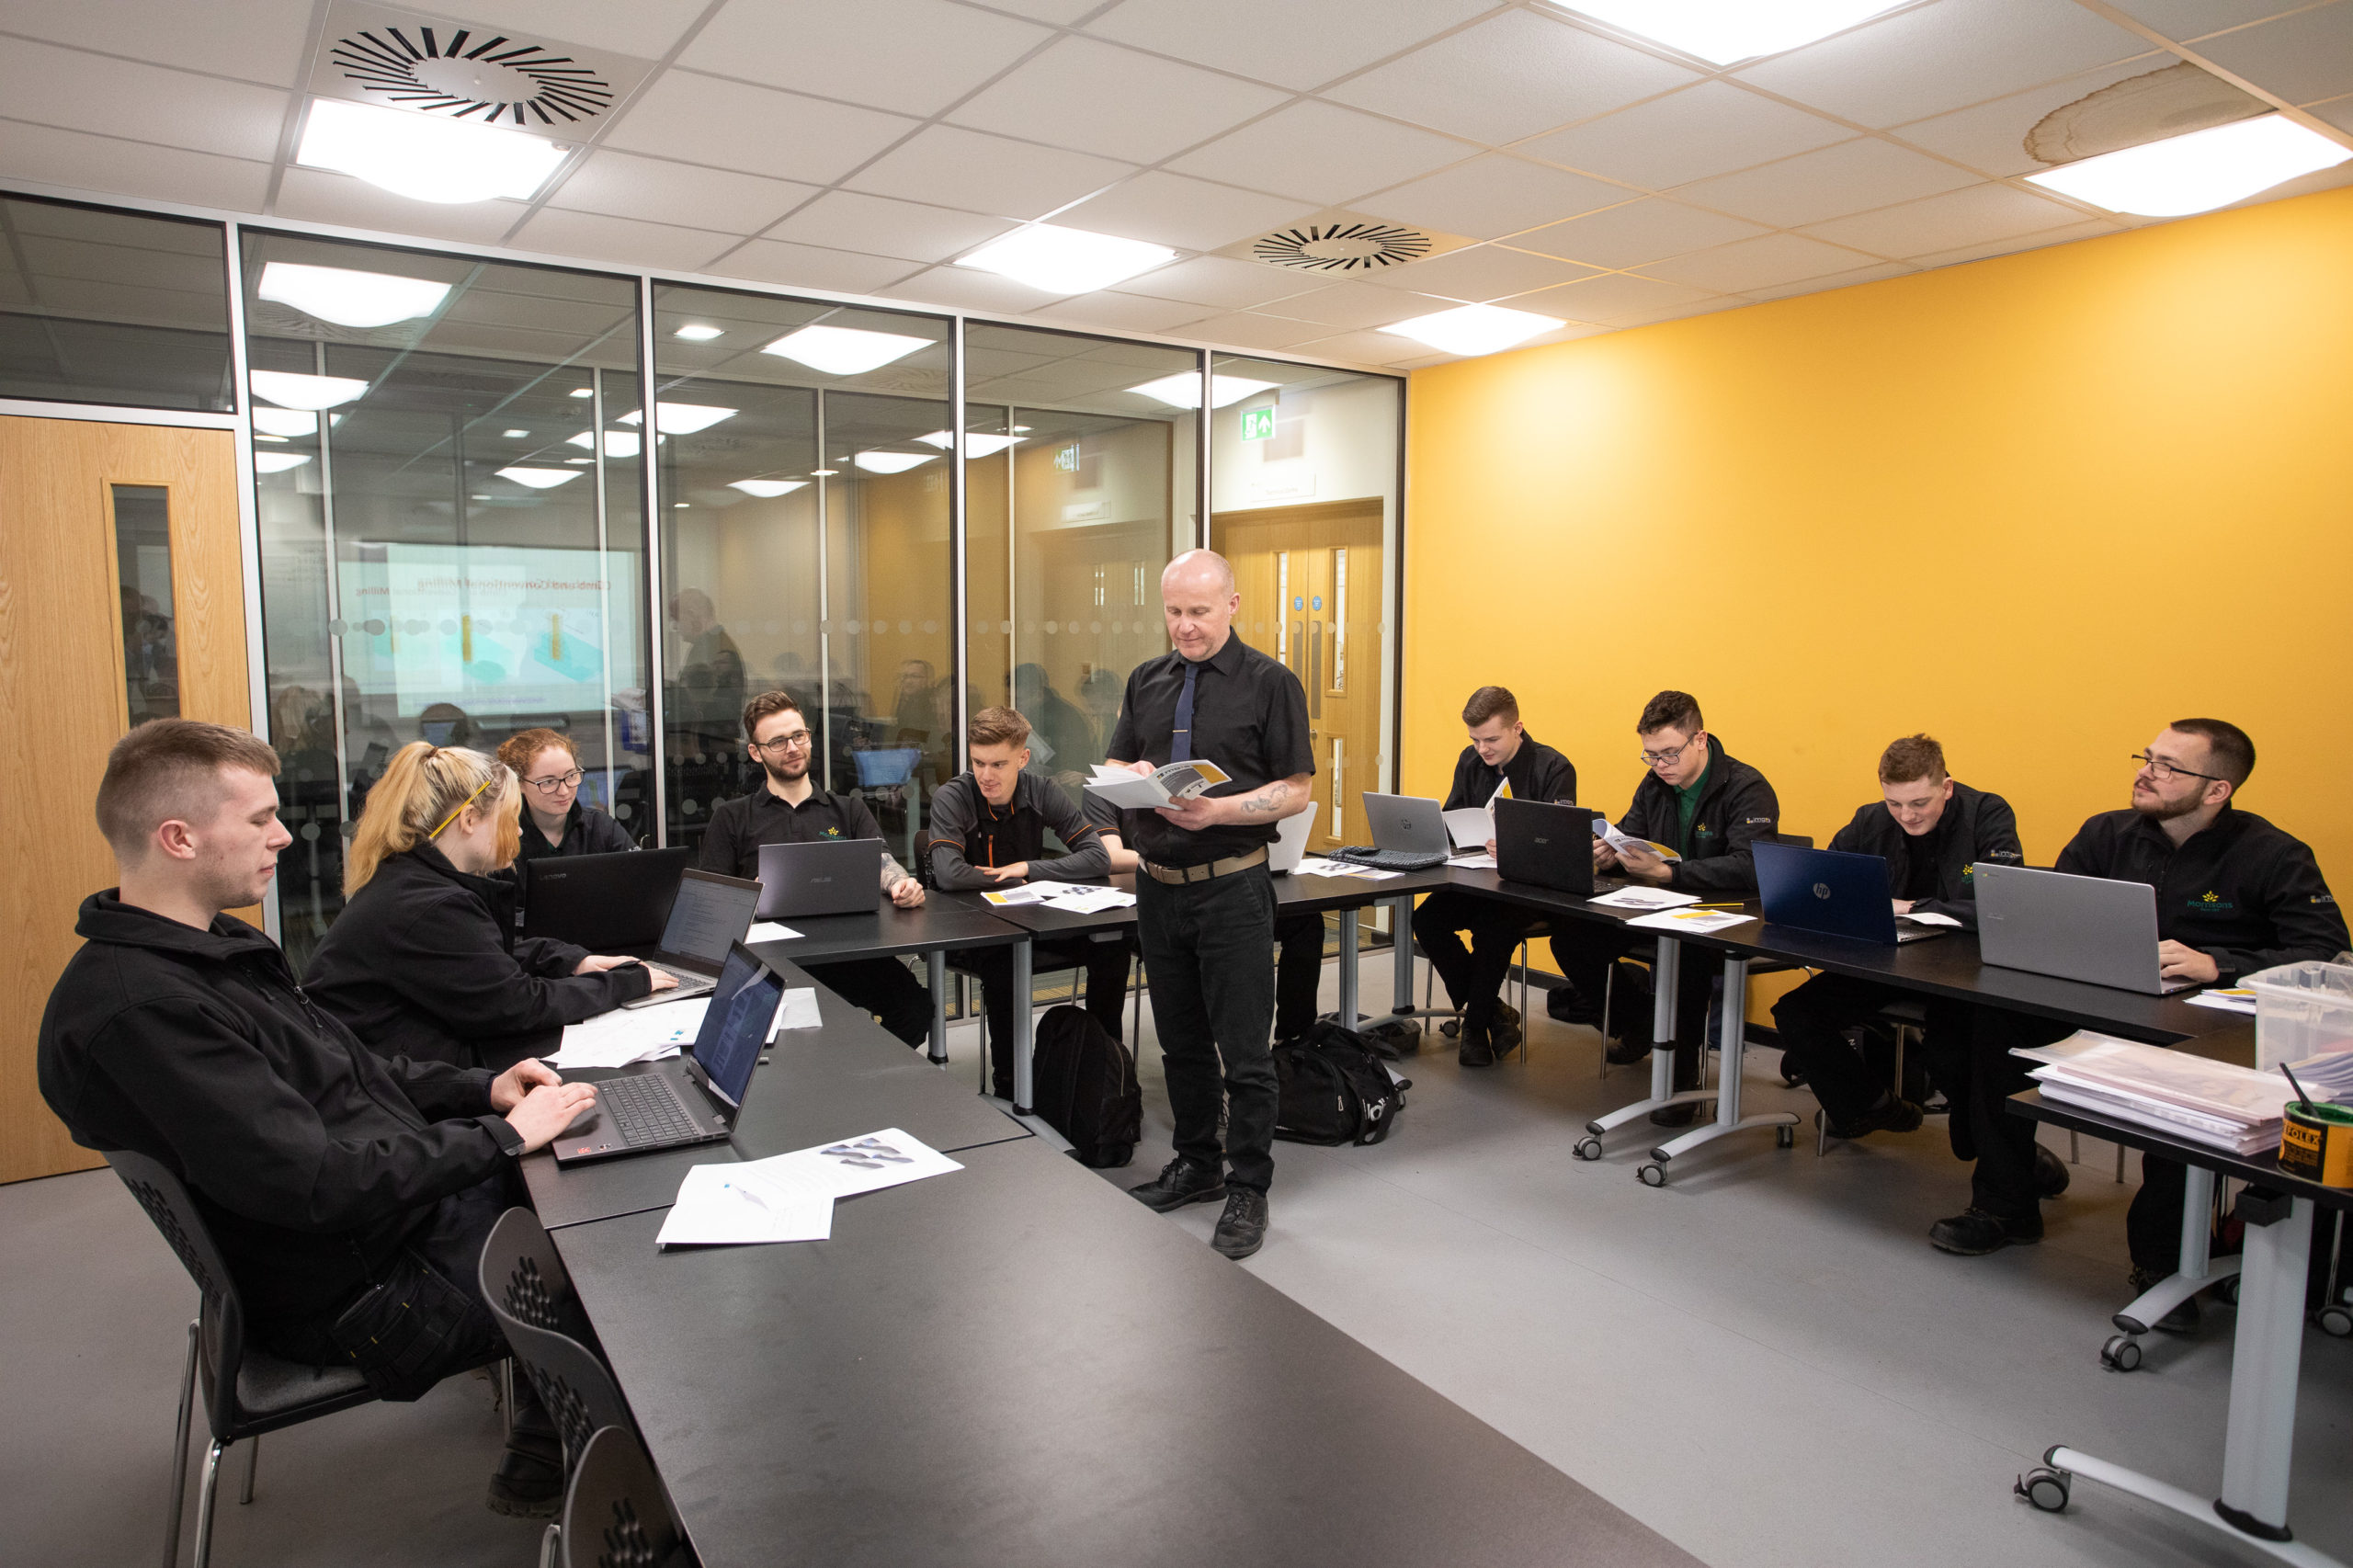 Food and Drink Engineering Maintenance Technician apprentices listening to classroom lecture